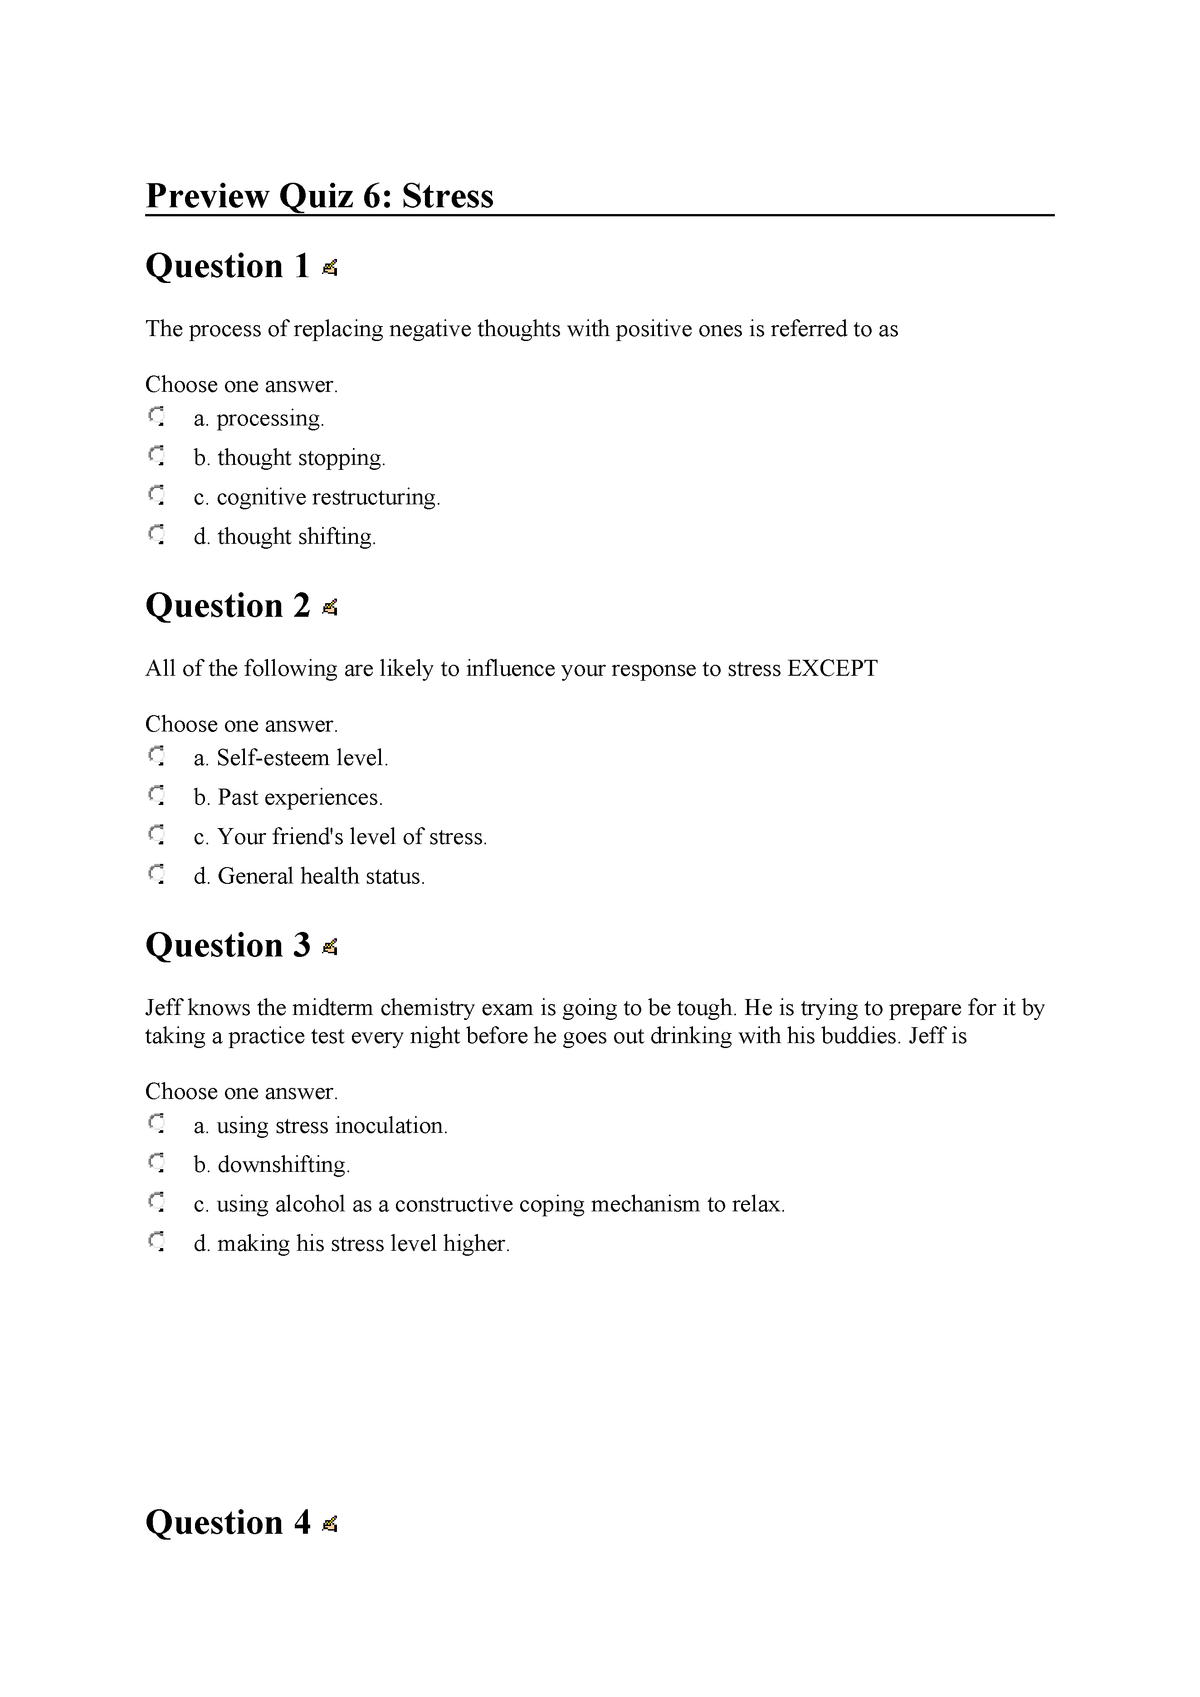 Preview Quiz 6: Stress - Health Behaviour - HBS110: Health